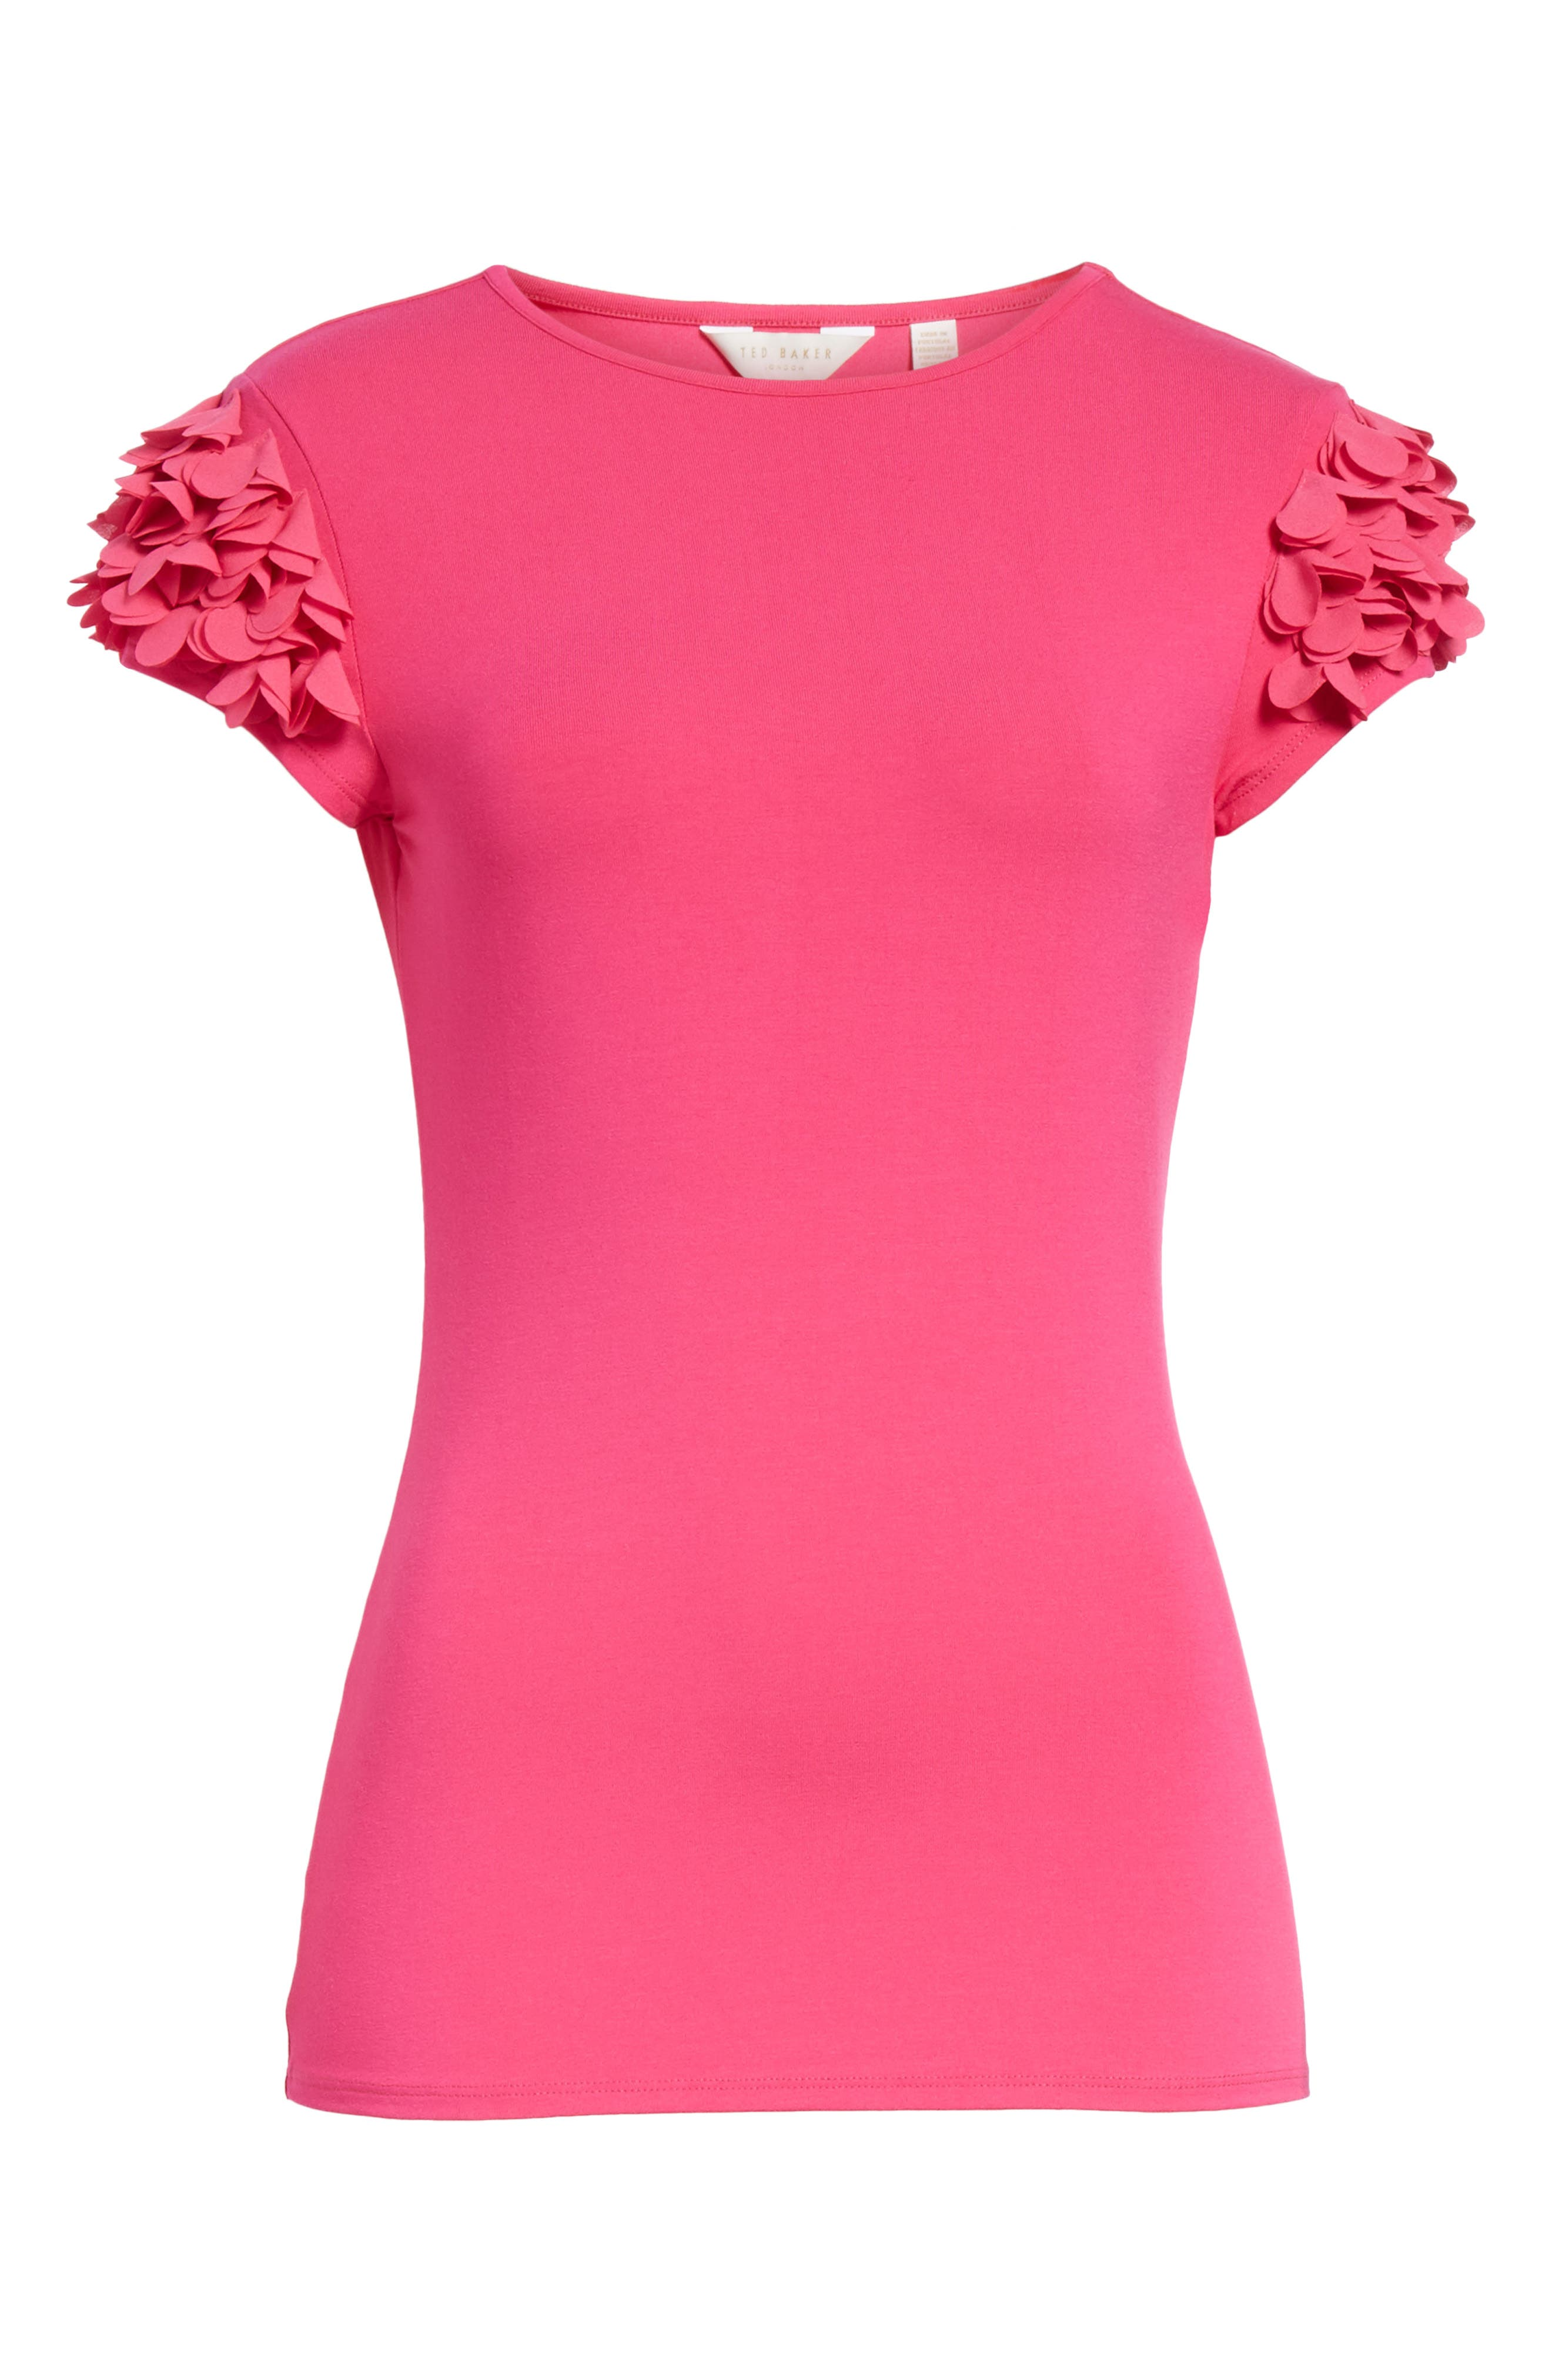 Floral Appliqué Sleeve Tee,                             Alternate thumbnail 6, color,                             Bright Pink